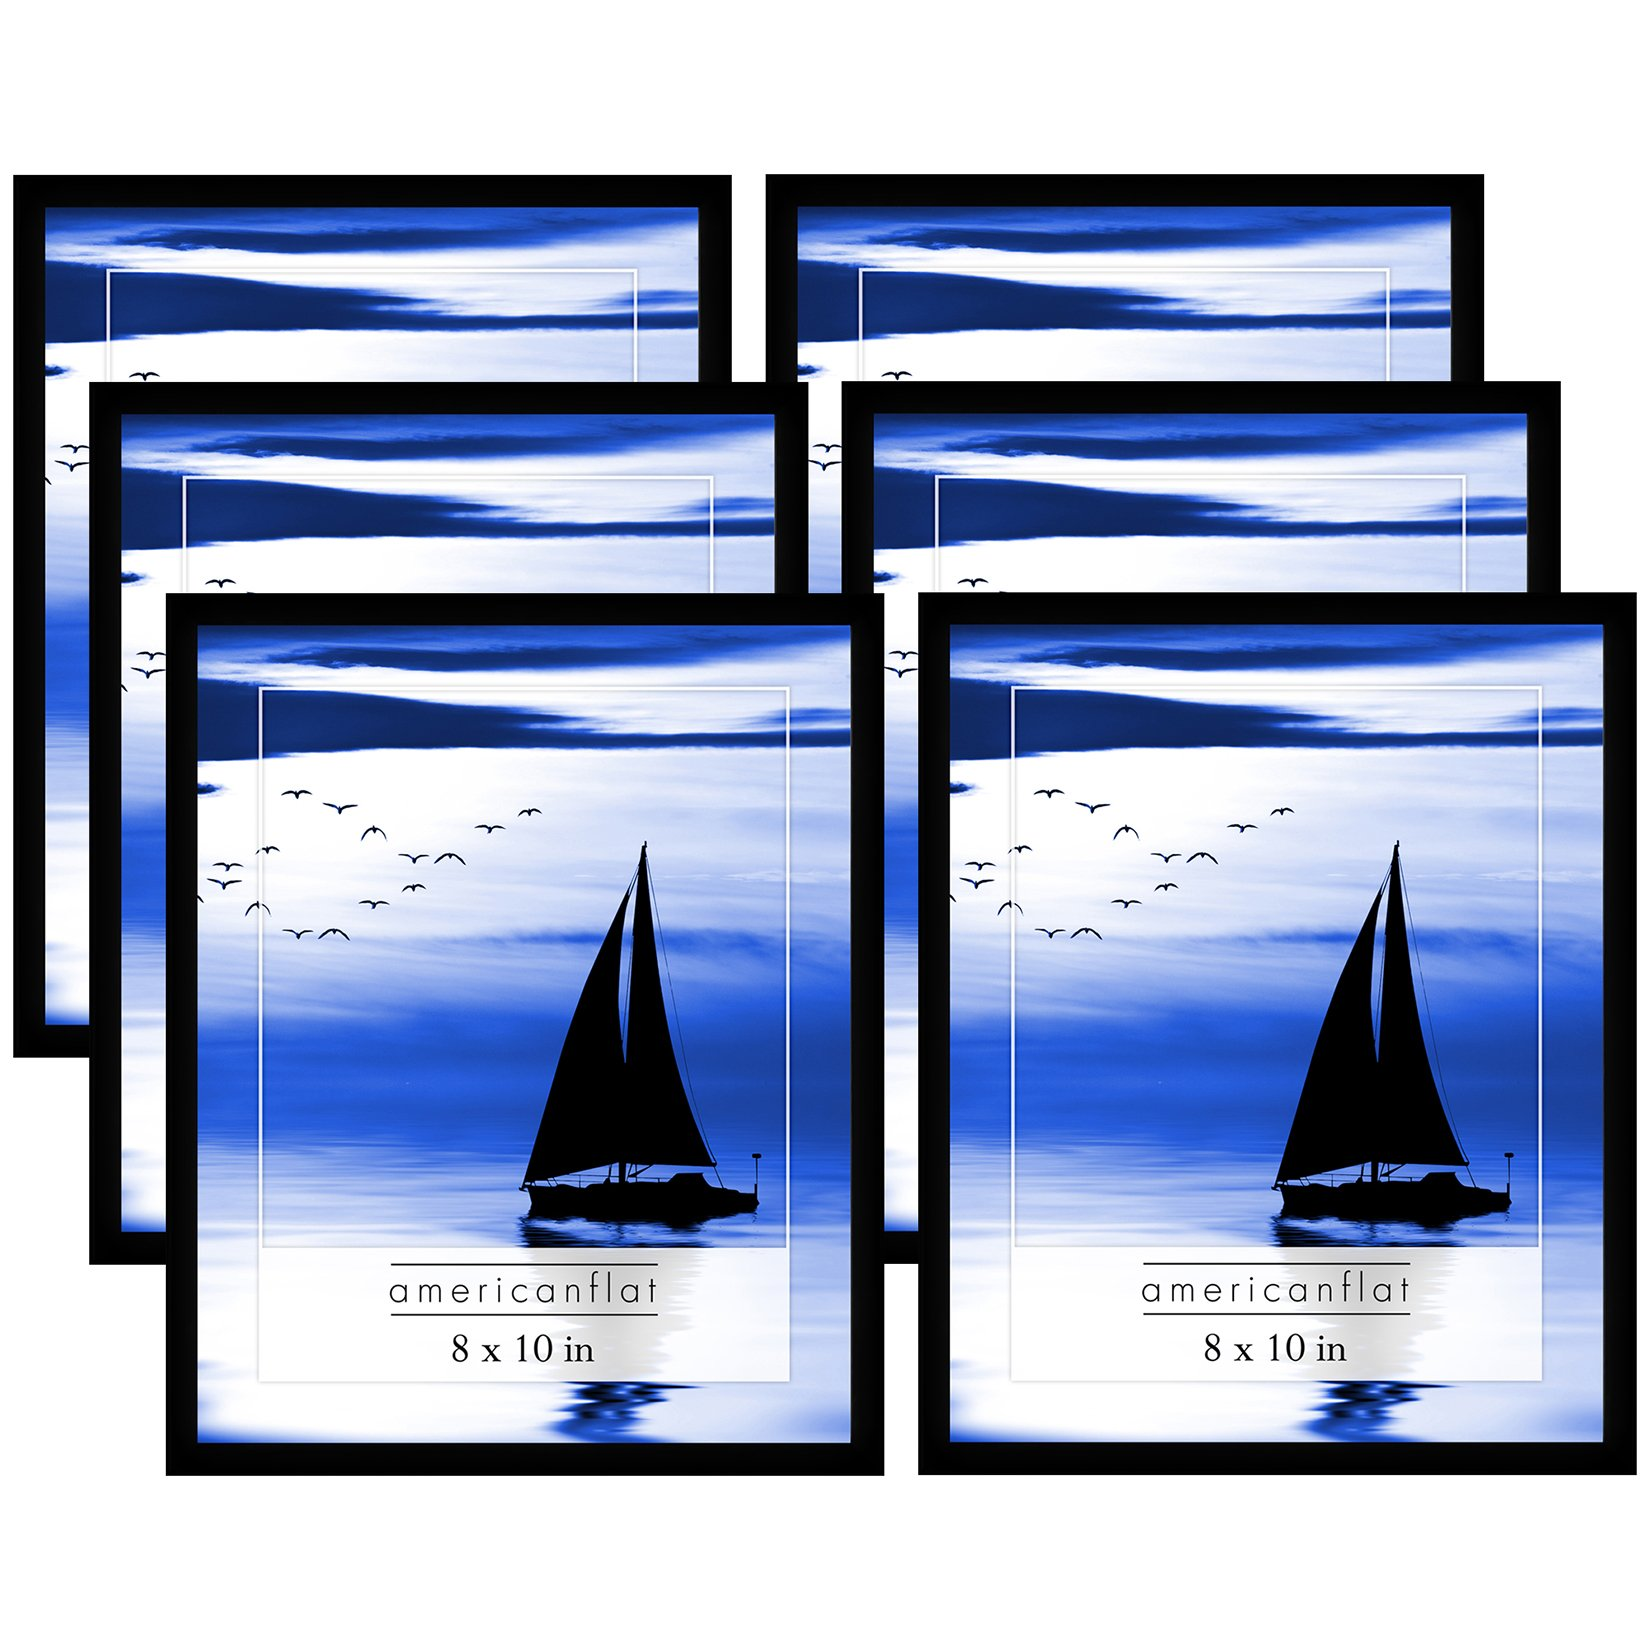 Americanflat 6 Pack - 8x10 Black Picture Frames with Glass Fronts by Americanflat